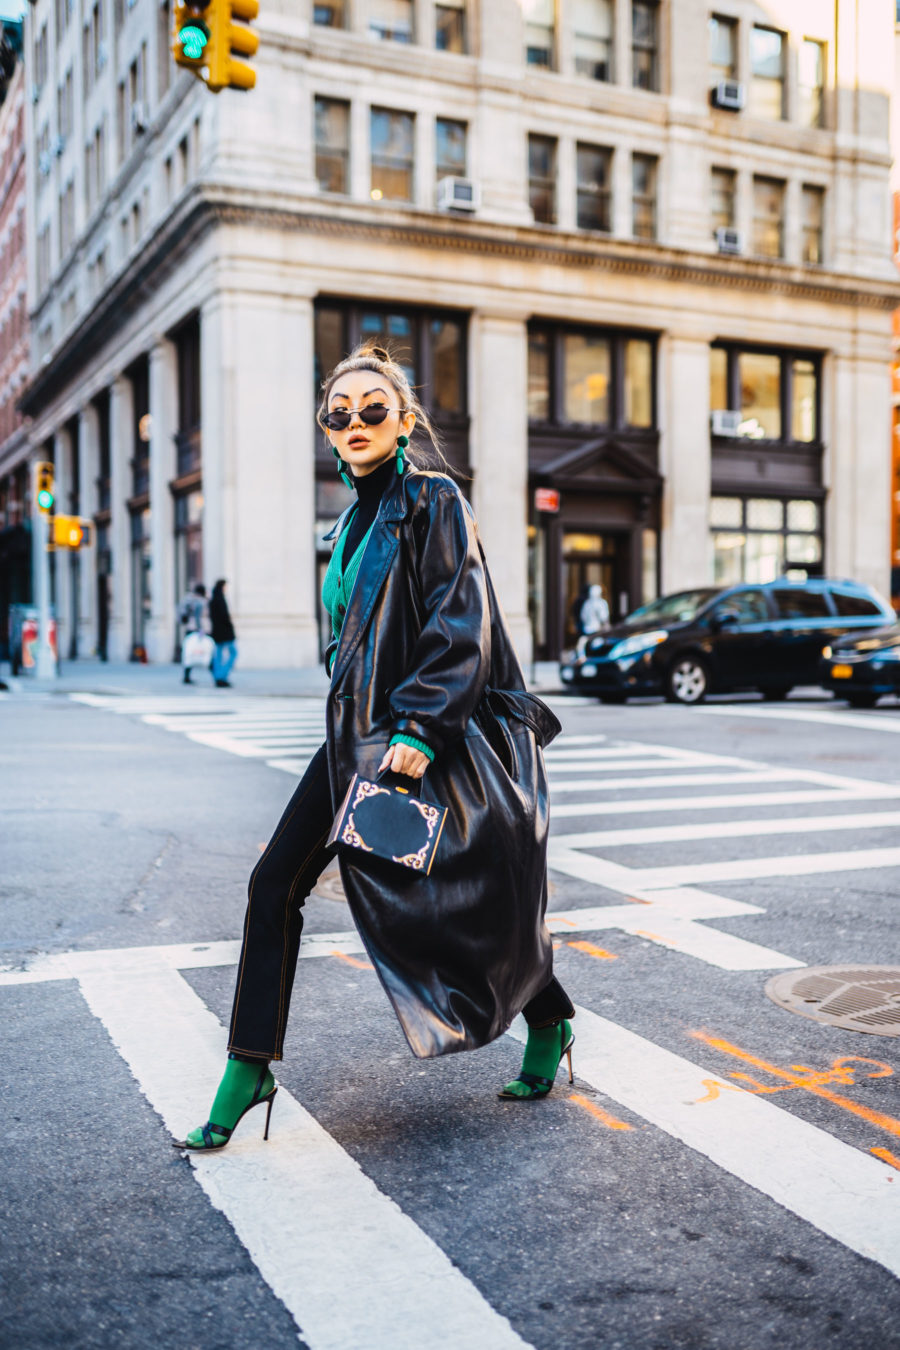 fashion blogger jessica wang shares the best winter coats and wears a leather trench coat with socks and sandals // Notjessfashion.com